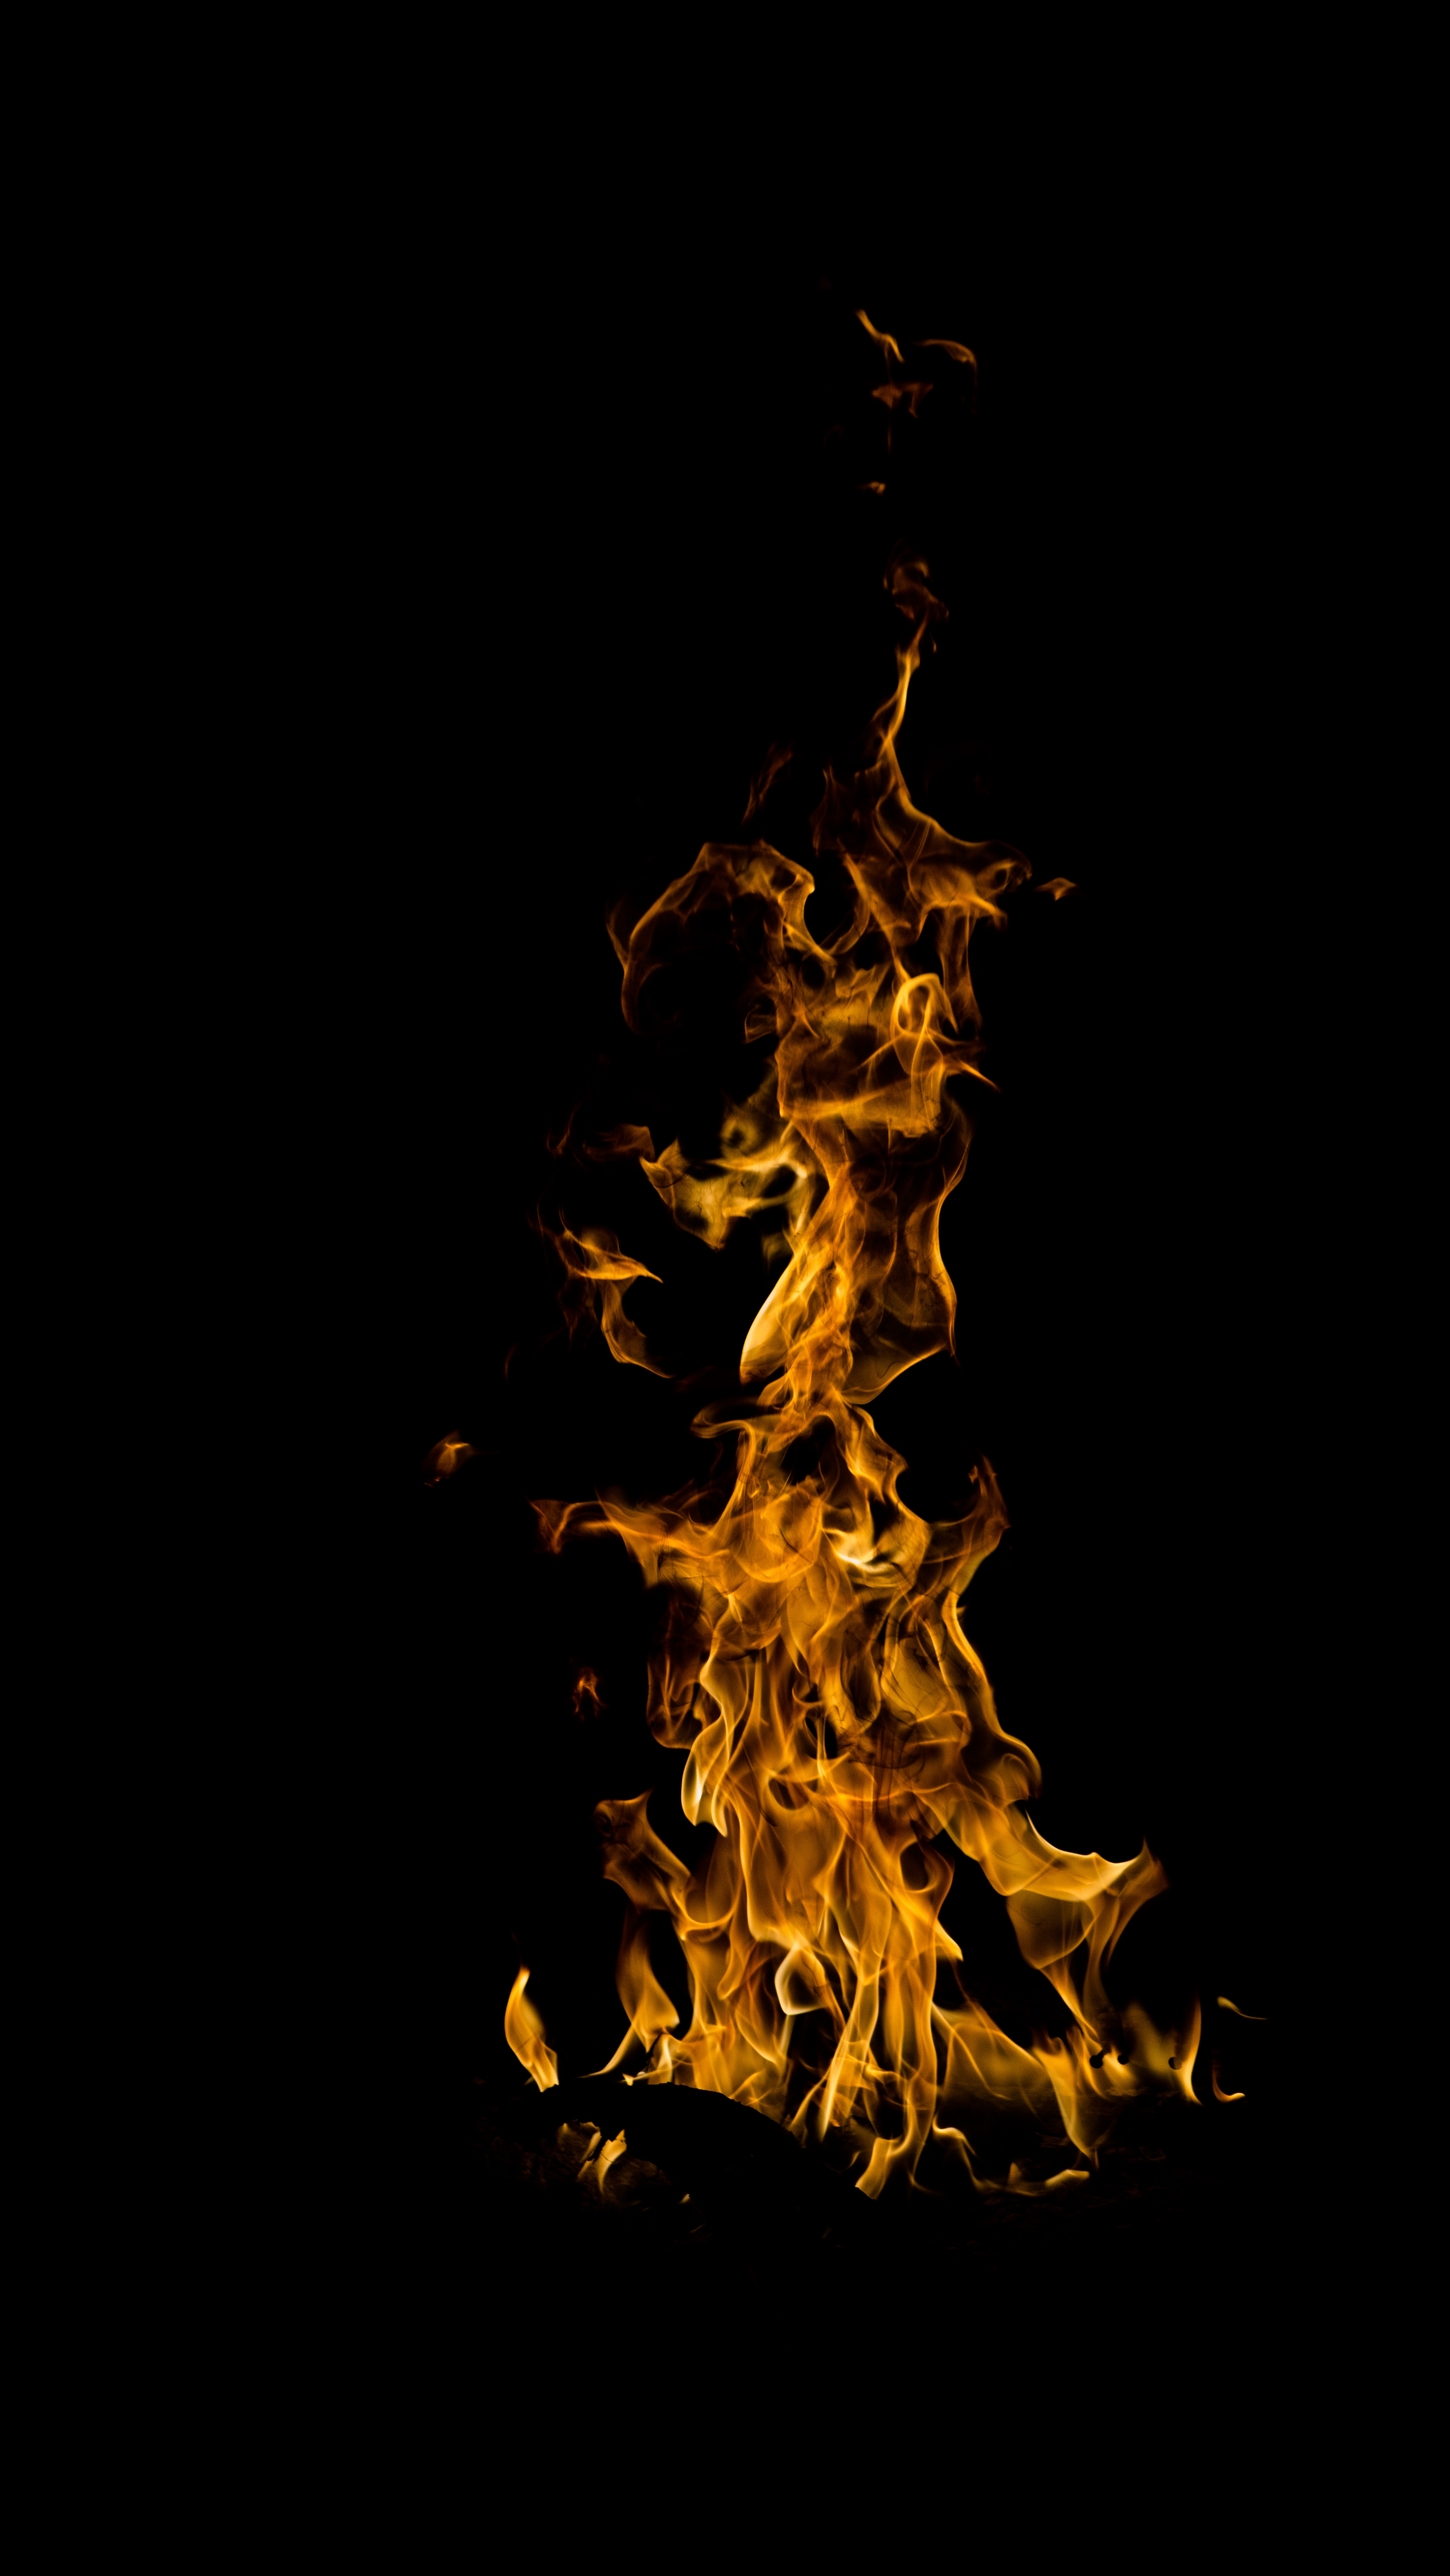 126220 Screensavers and Wallpapers Bonfire for phone. Download Fire, Bonfire, Night, Dark, Flame, Darkly, Is Burning, Burns pictures for free